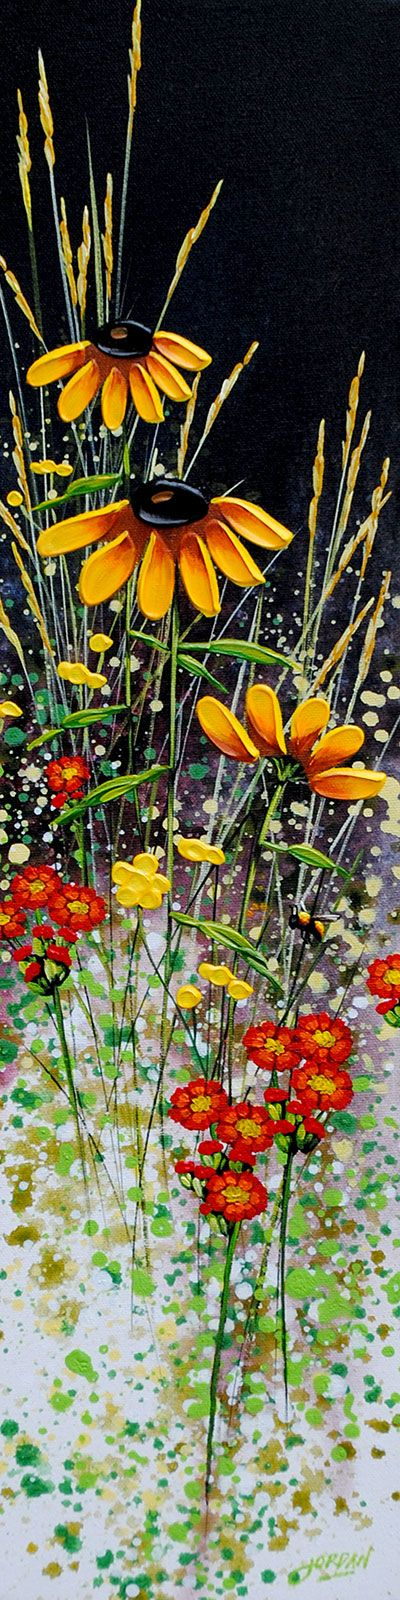 Susans and Bee 24 x 6 Acrylic on Canvas by Jordan Hicks. Email info@crescenthill... for price and more information More